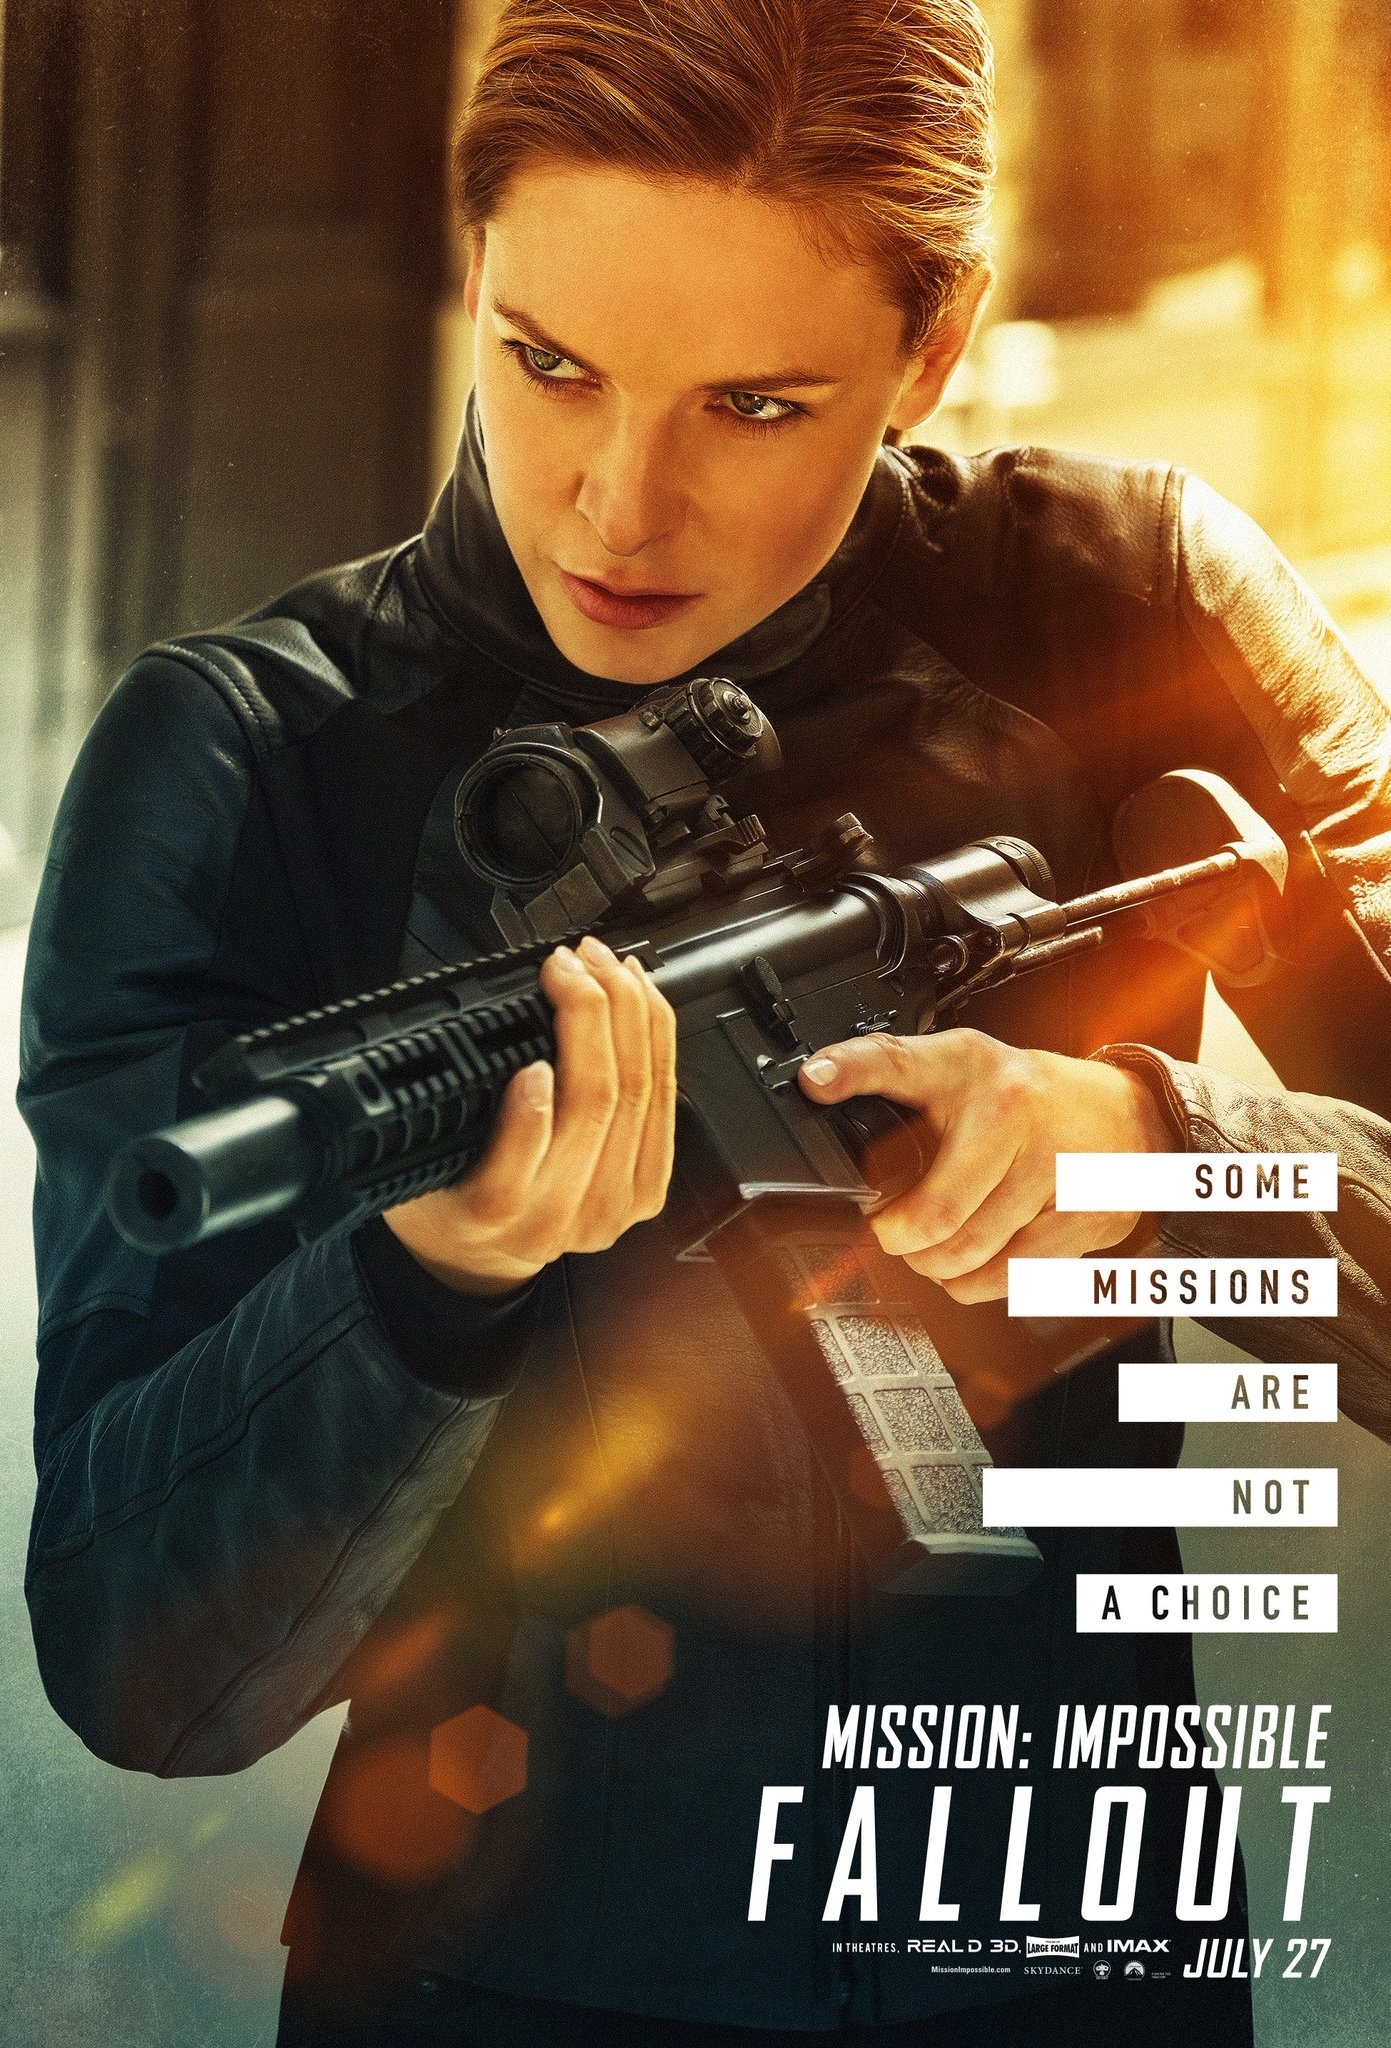 Mission Impossible Fallout poster 8.jpg